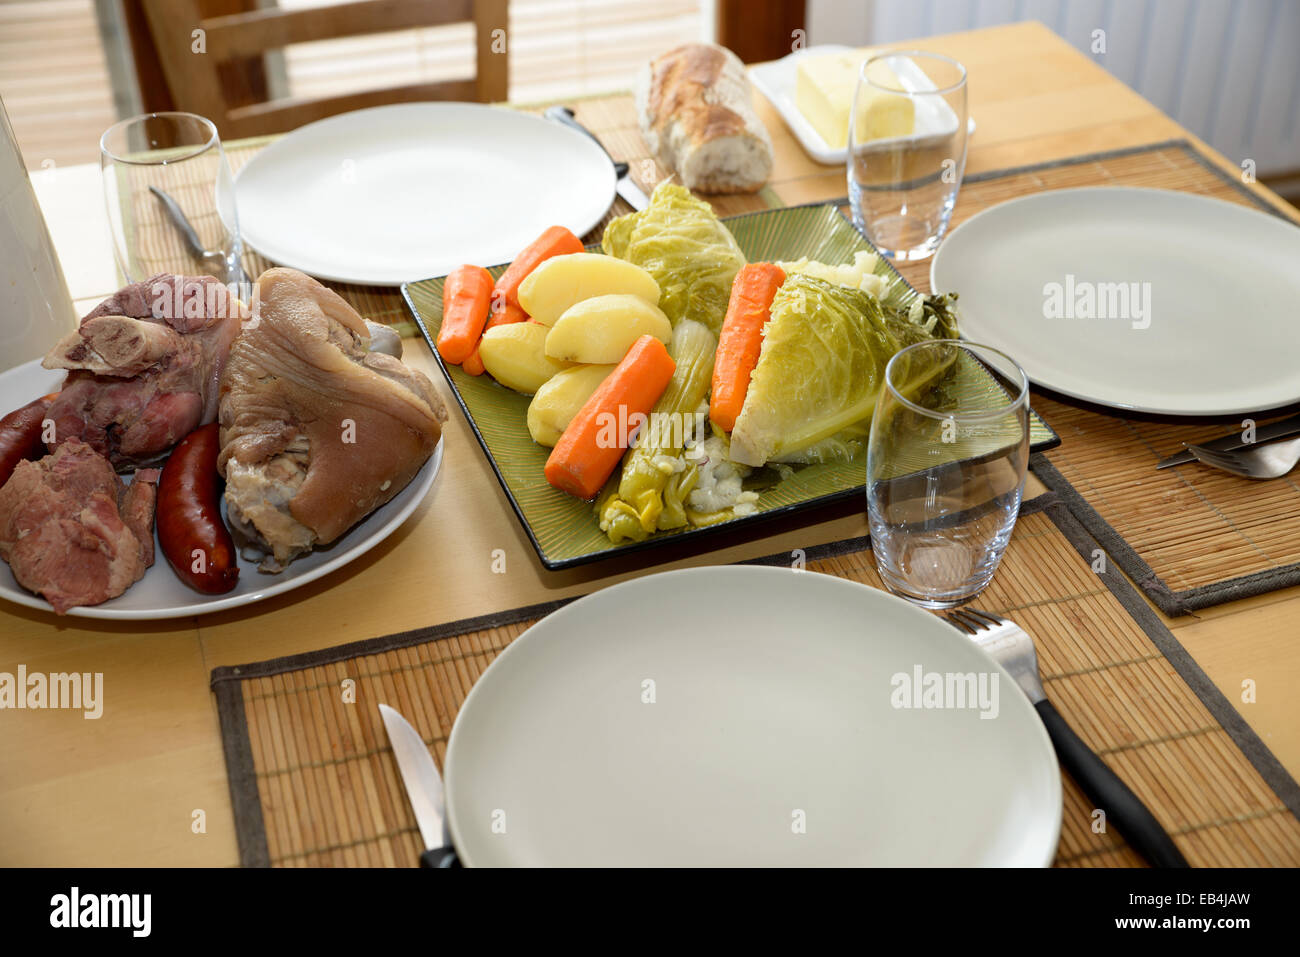 pot-au-feu with meat and vegetables in a dish Stock Photo